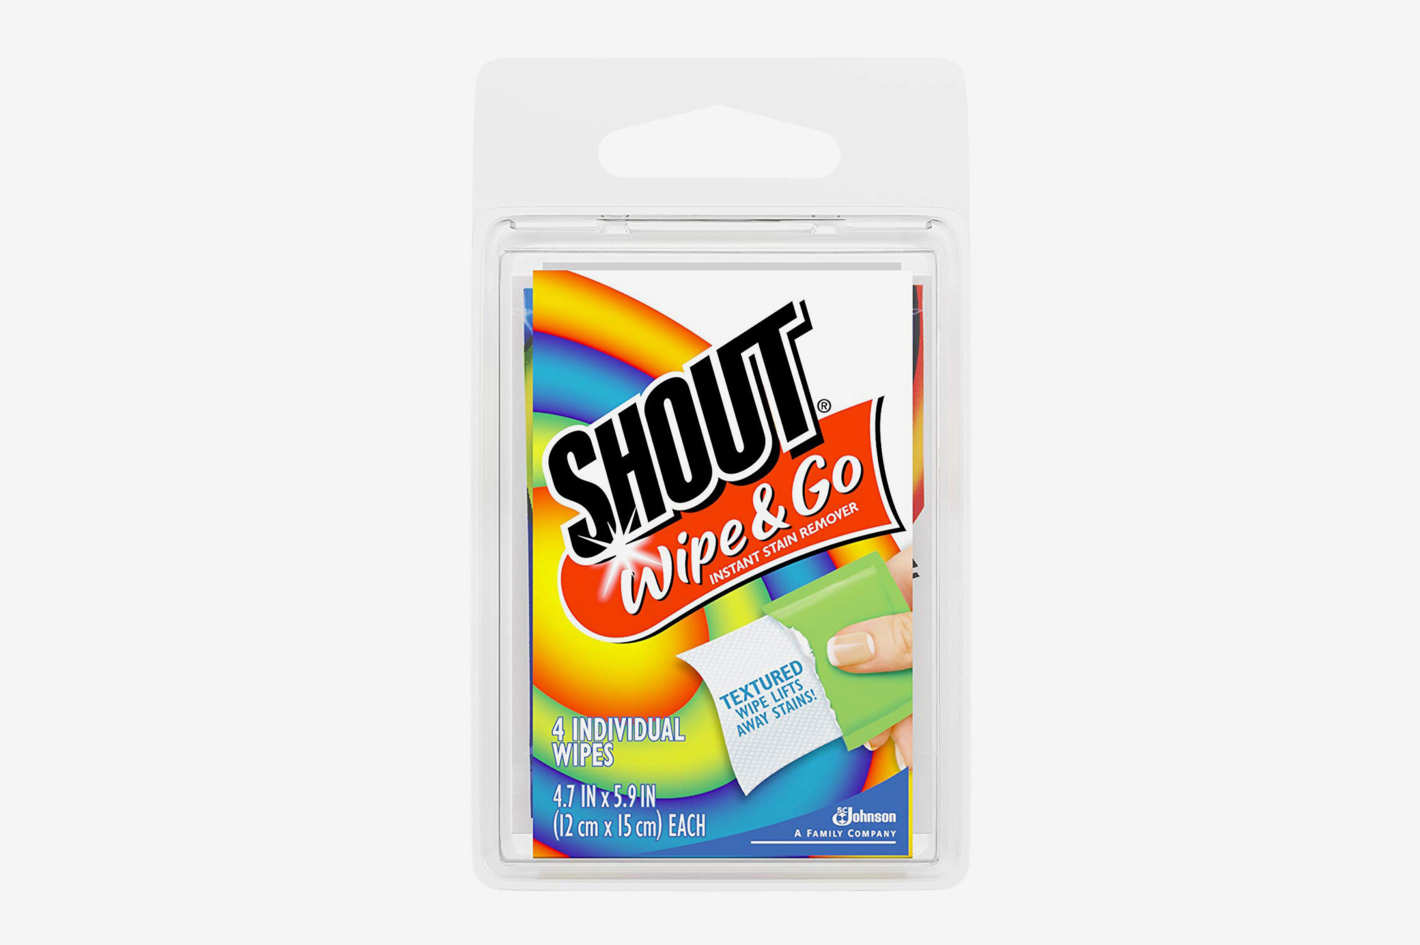 Shout Wipe & Go Wipes, 4 Count